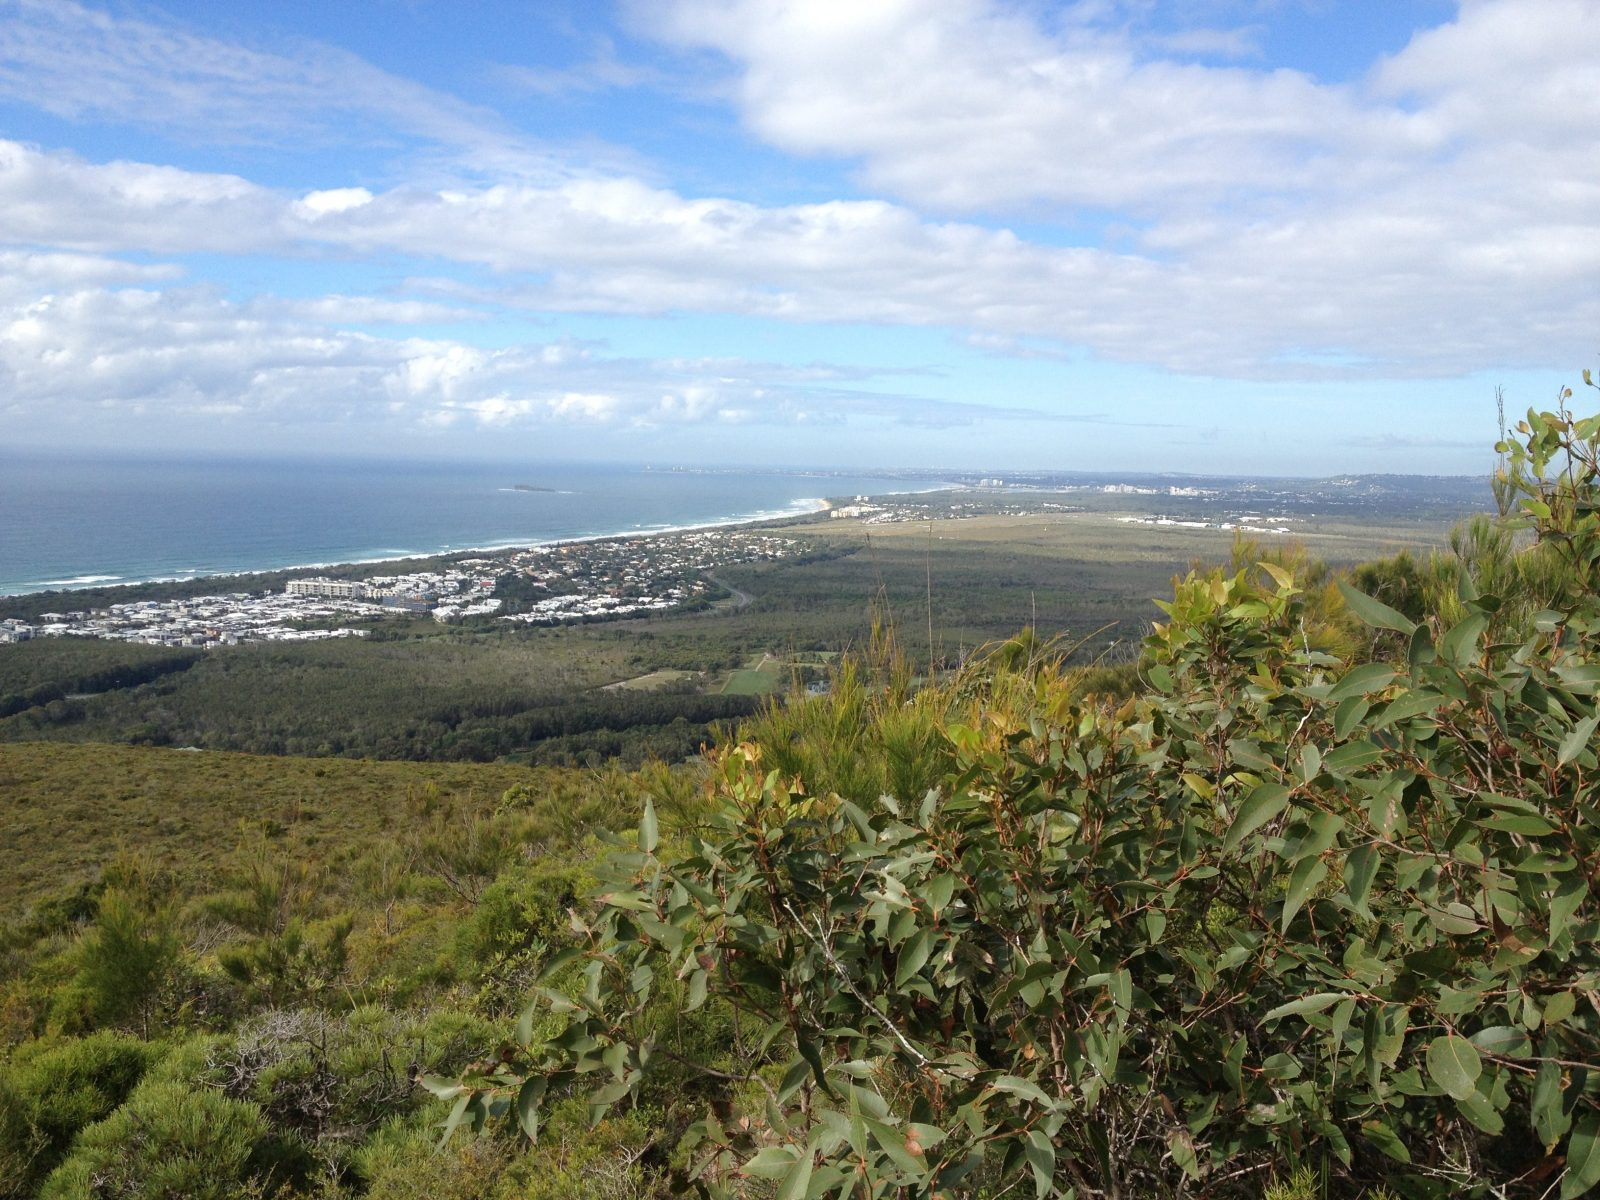 View over coastal plain from vantage point on hill with ocean in the distance.